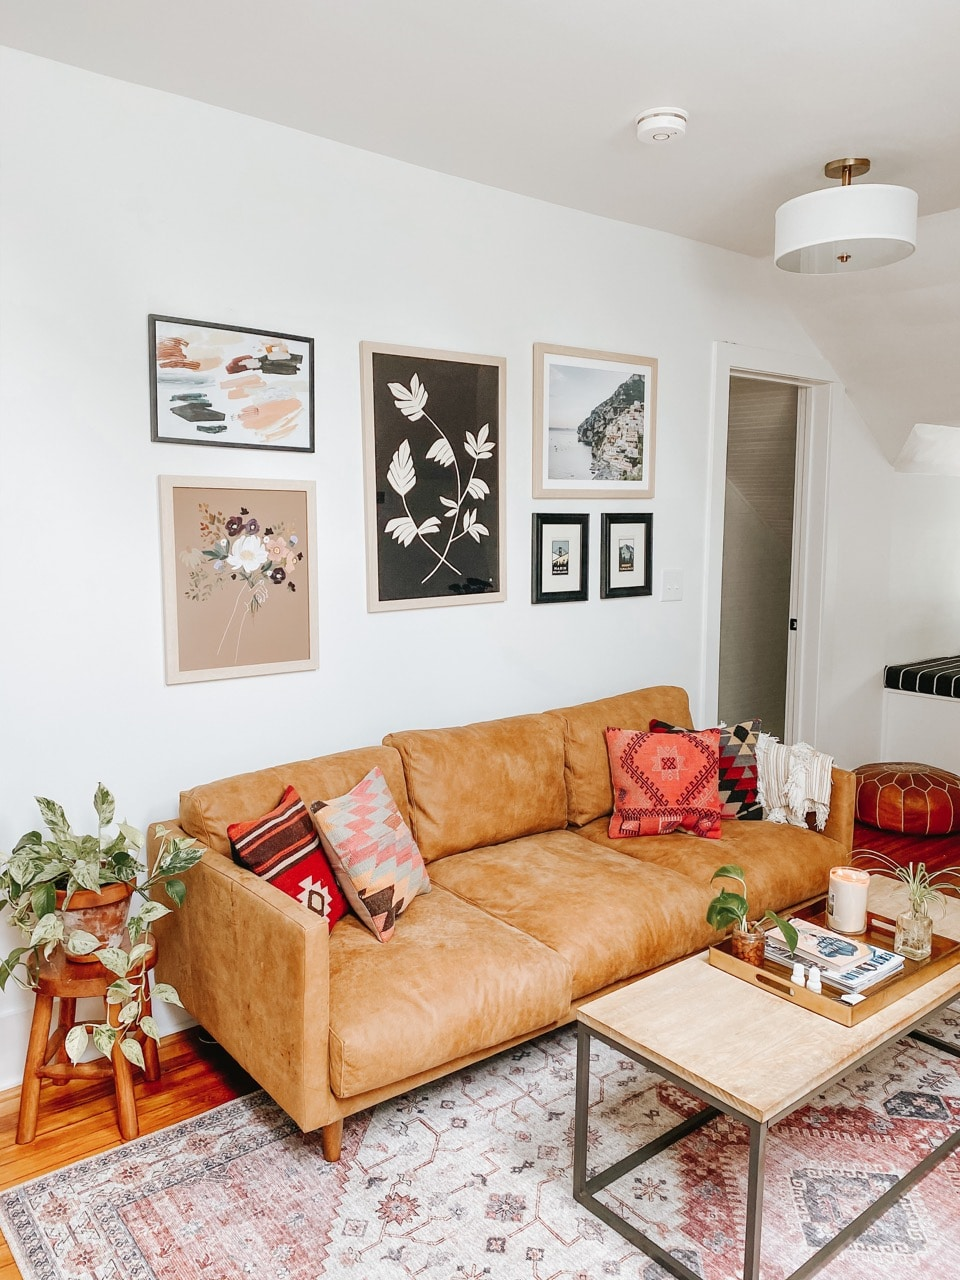 Gallery wall above couch